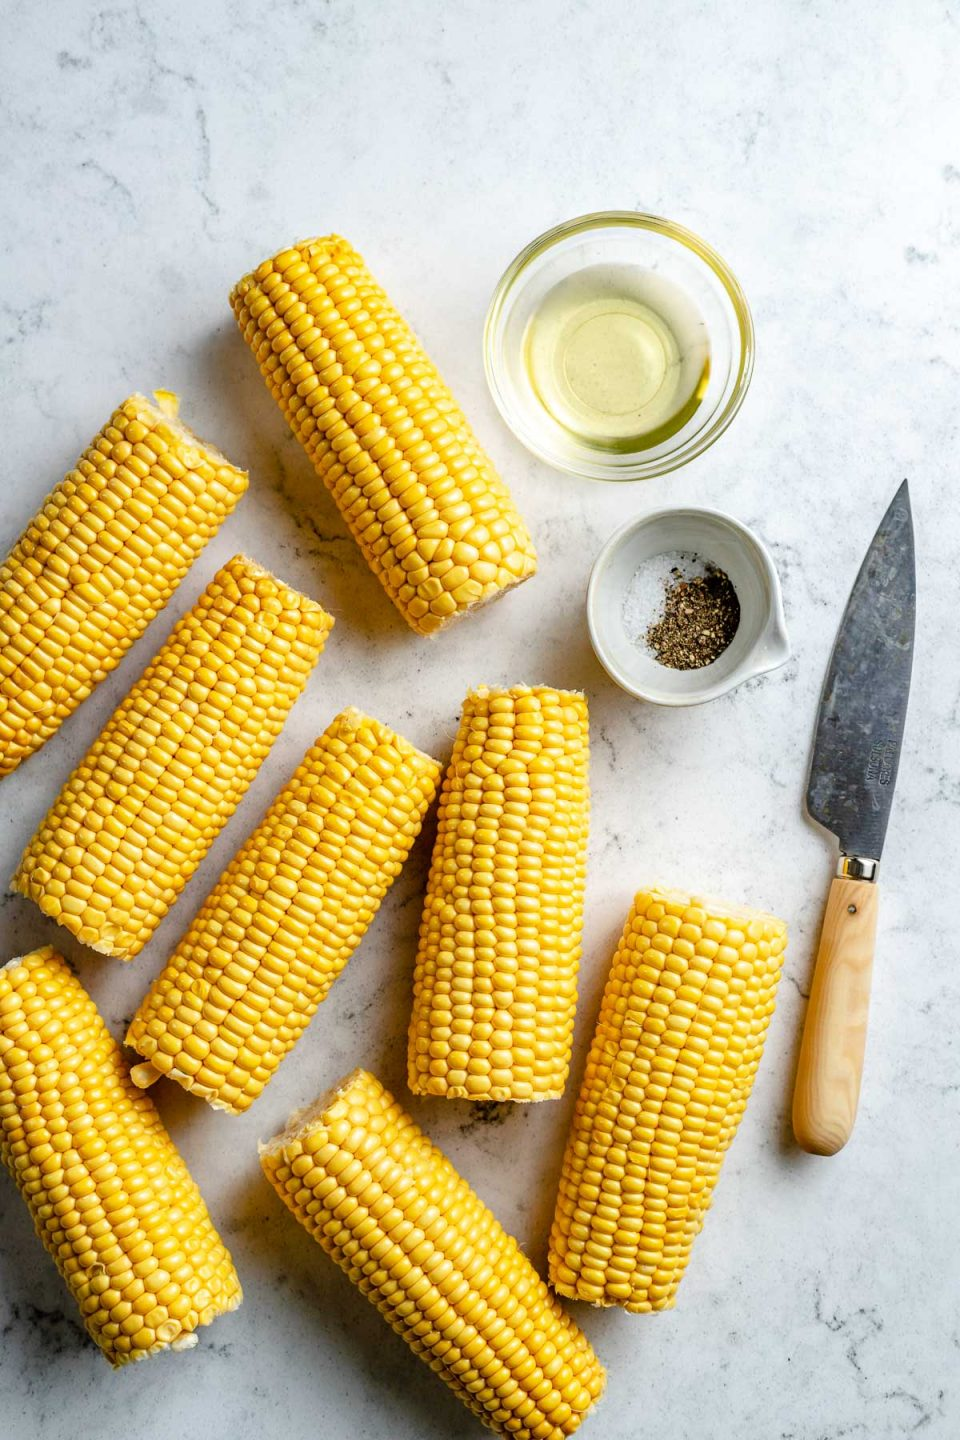 Grilled corn ingredients arranged on a white & grey marble surface - eight pieces of sweet corn, avocado oil, kosher salt, & ground black pepper. A pairing knife rests on the surface next to the ingredients.